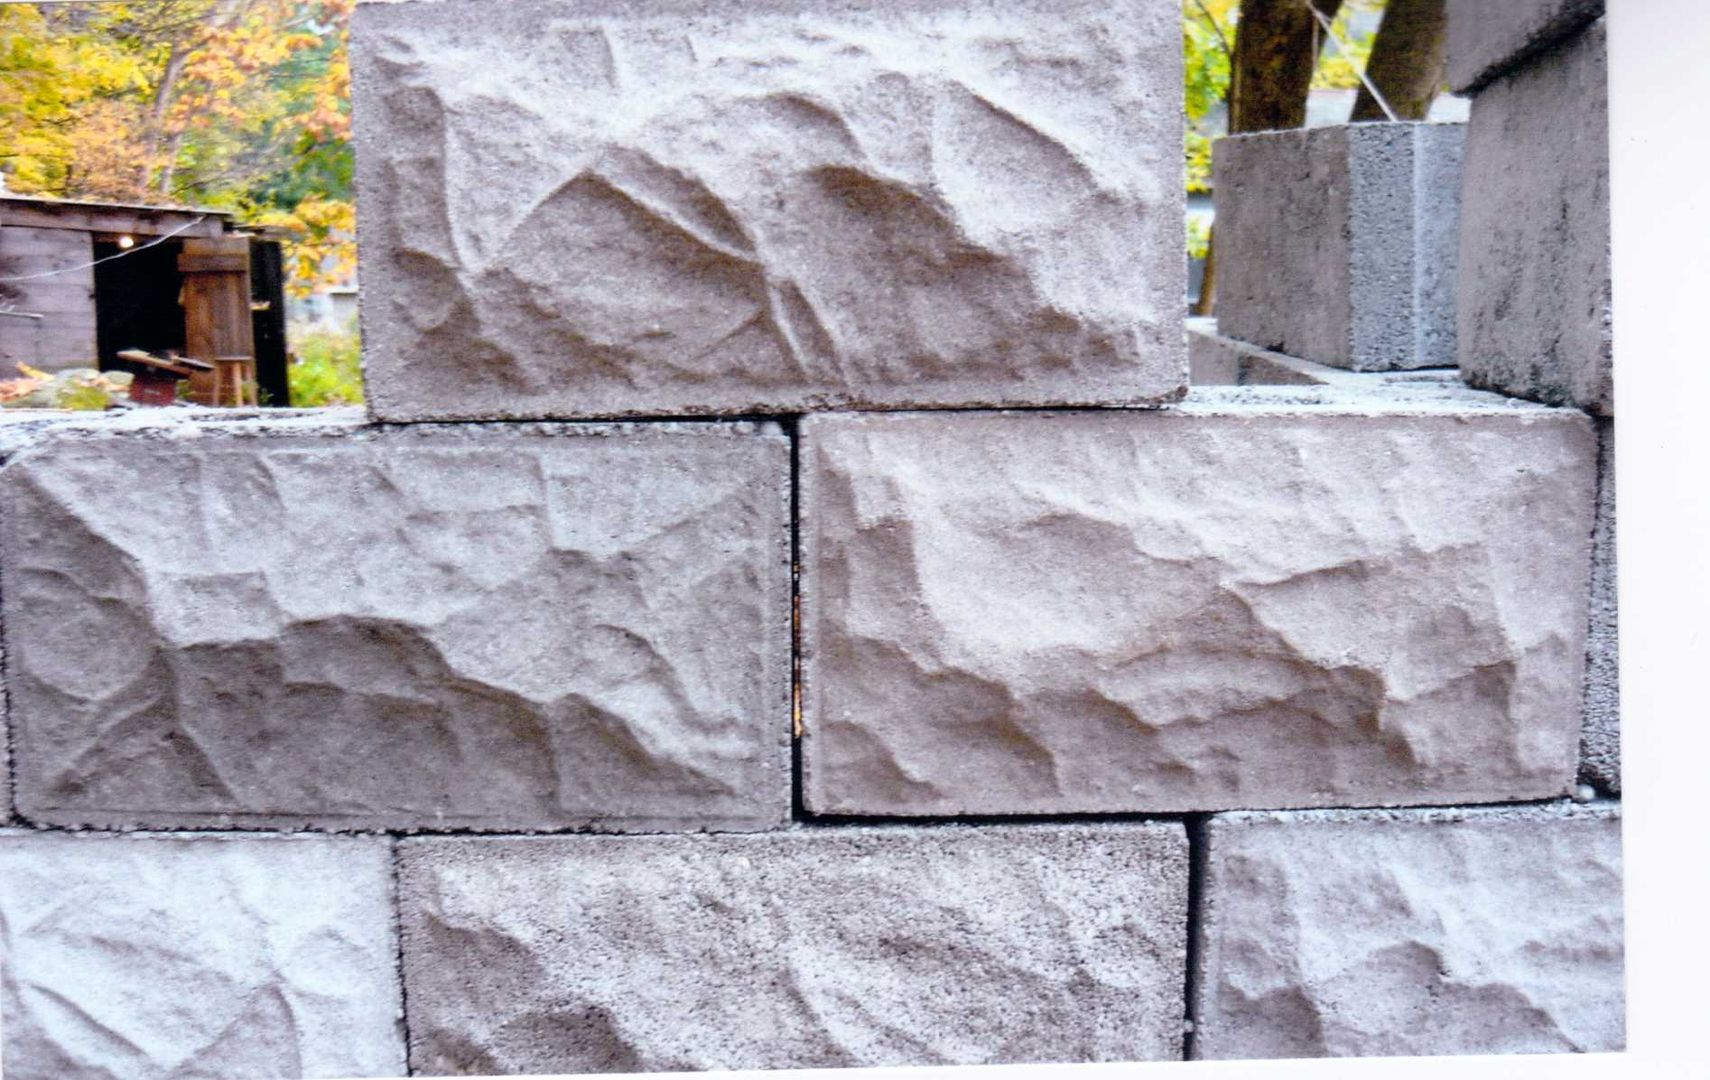 Historic Rock Face Block Decorative Concrete Block Rock